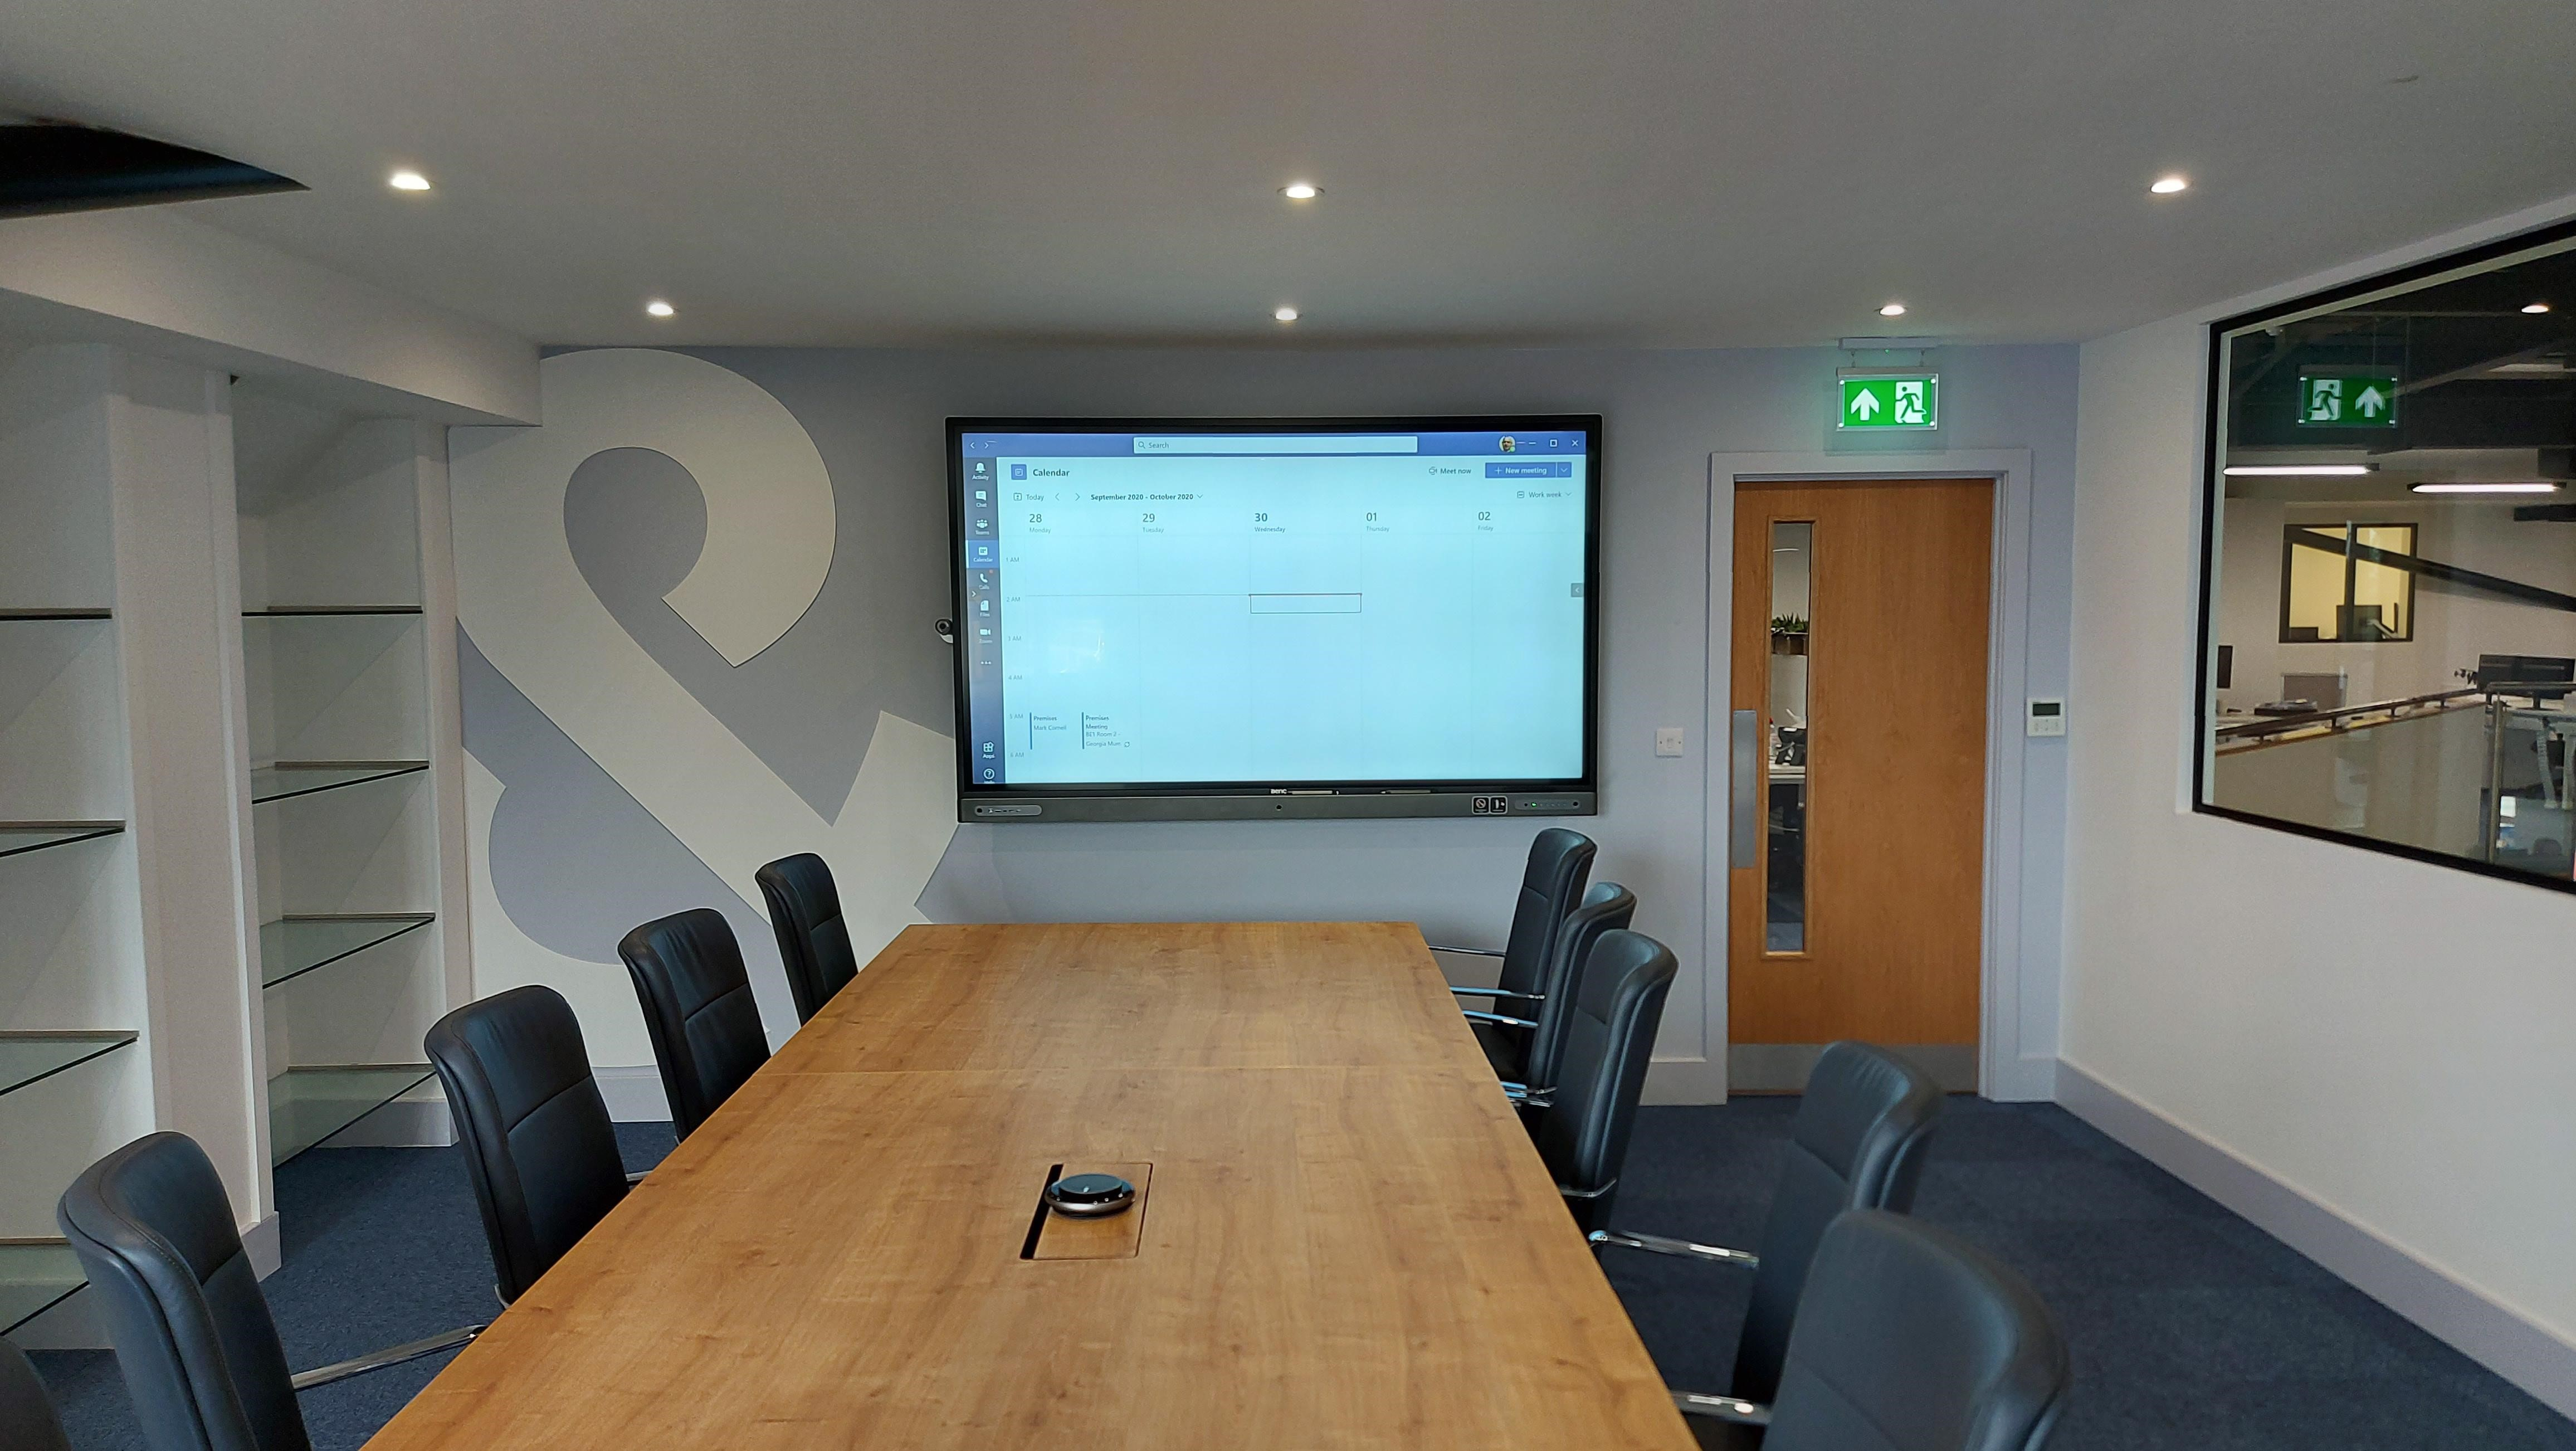 Holmes and Hills Solicitors AV installation